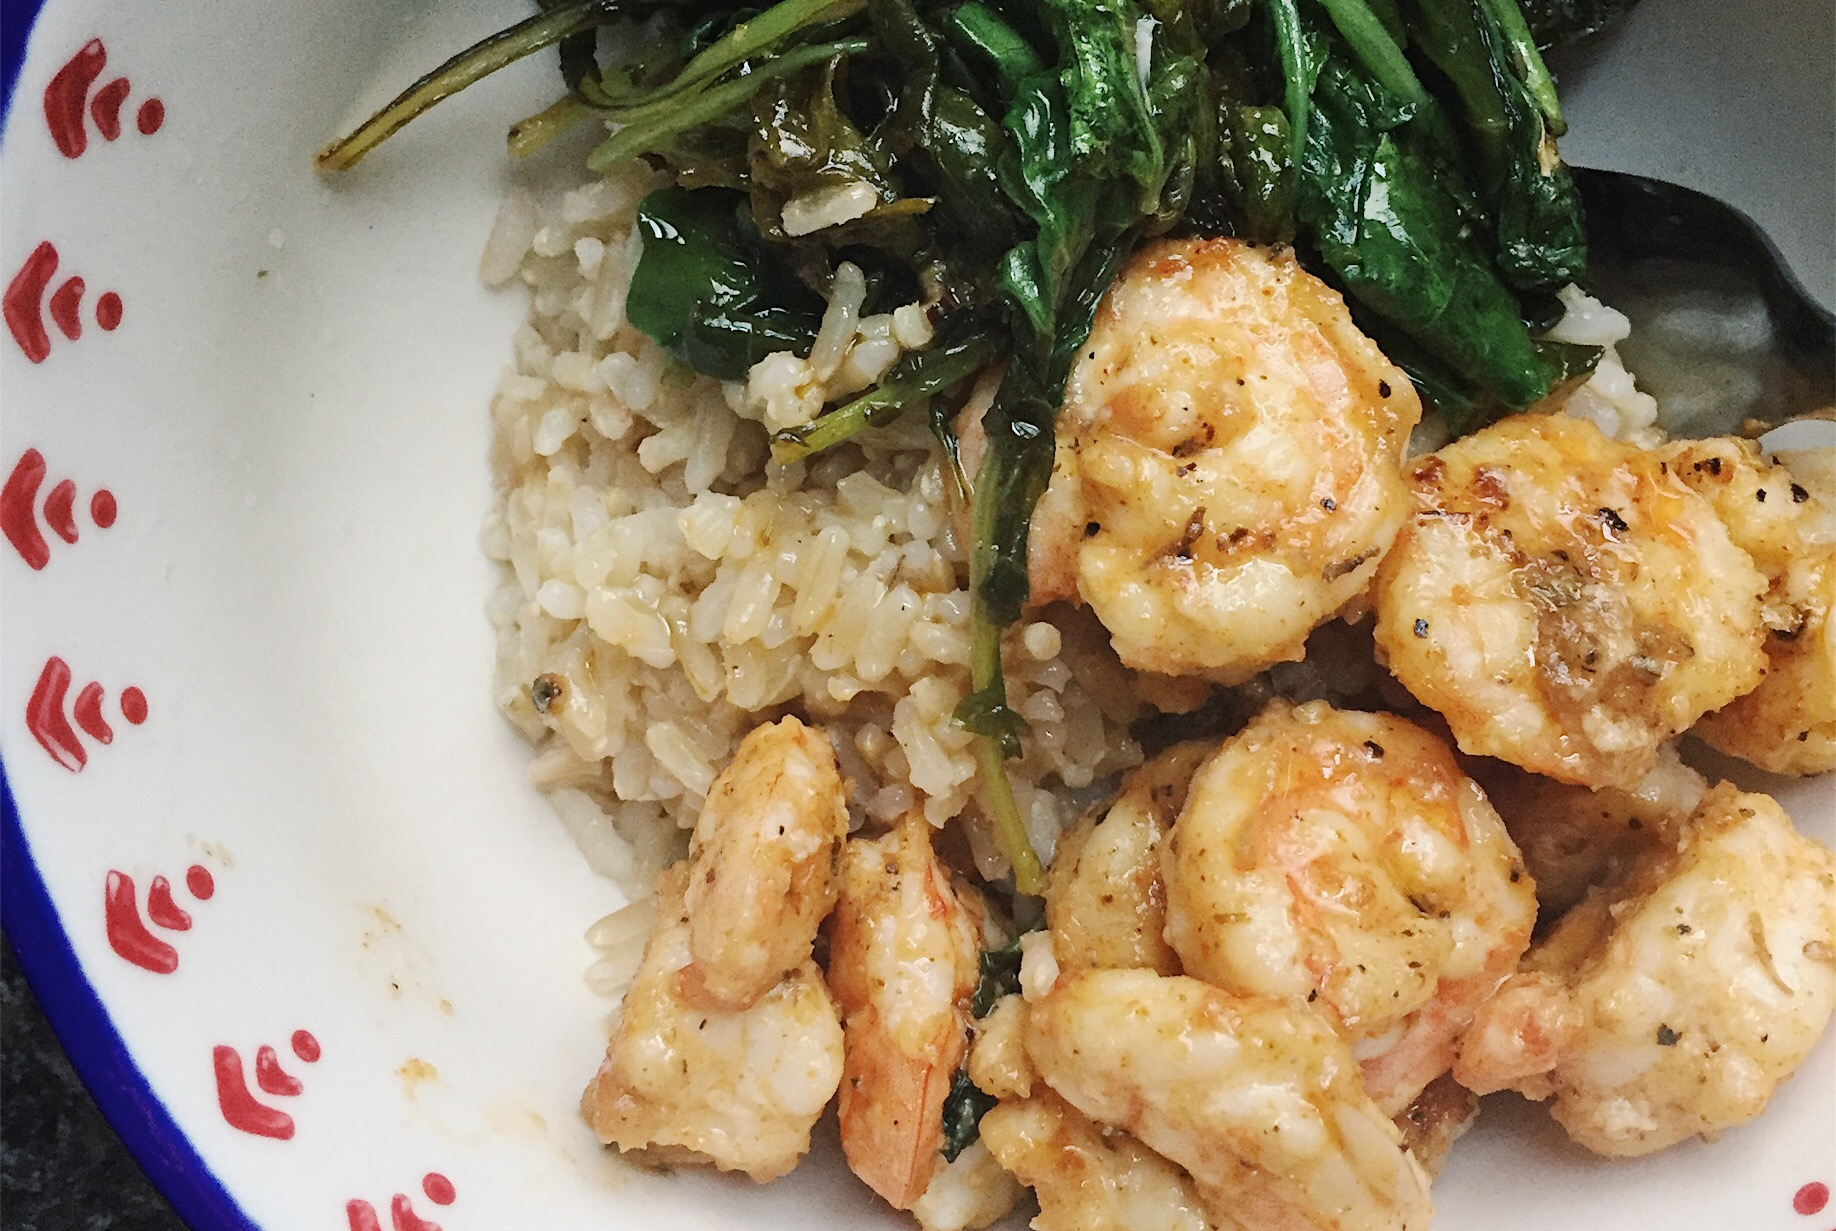 Spicy Garlic and Lime Shrimp (with brown rice and garlicky kale)